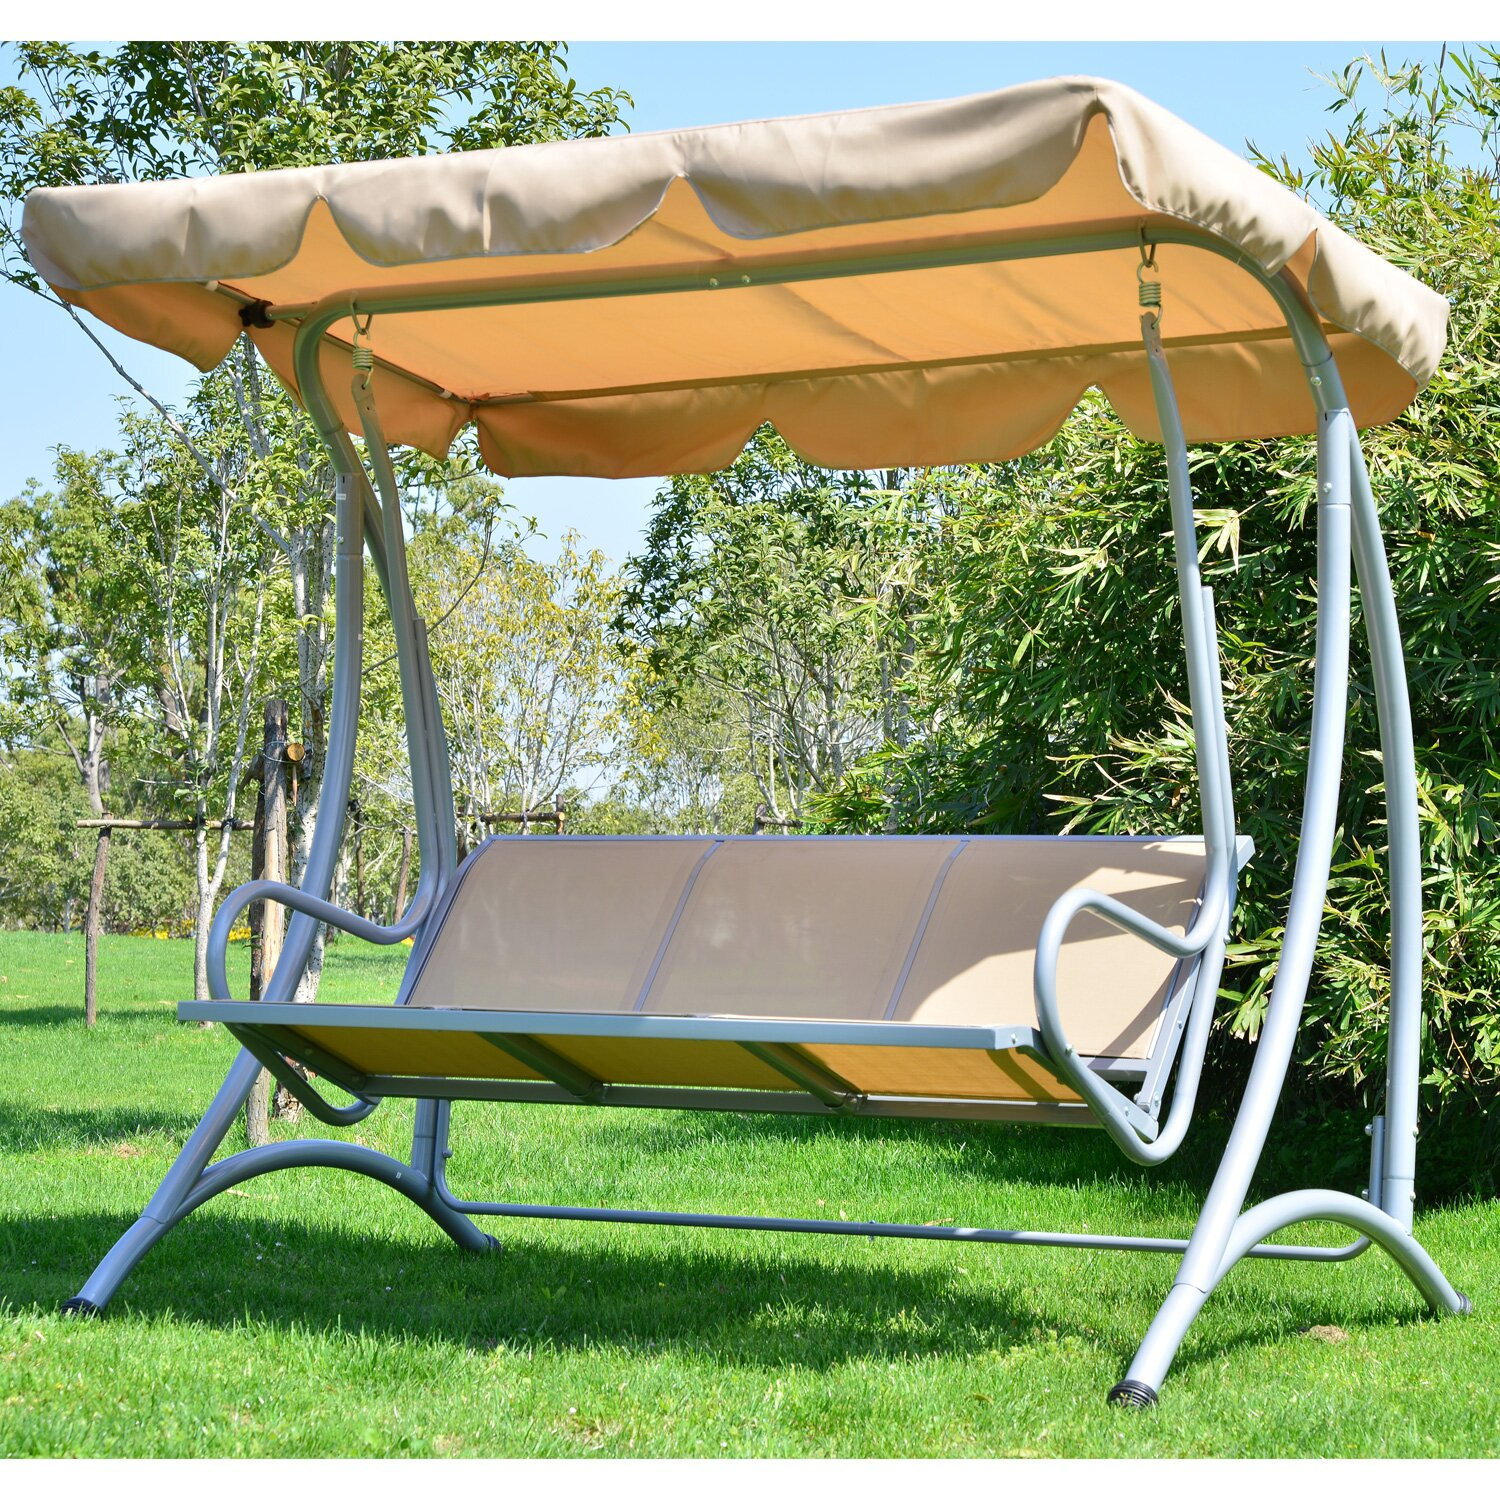 Outsunny Outsunny Patio Swing with Stand & Reviews